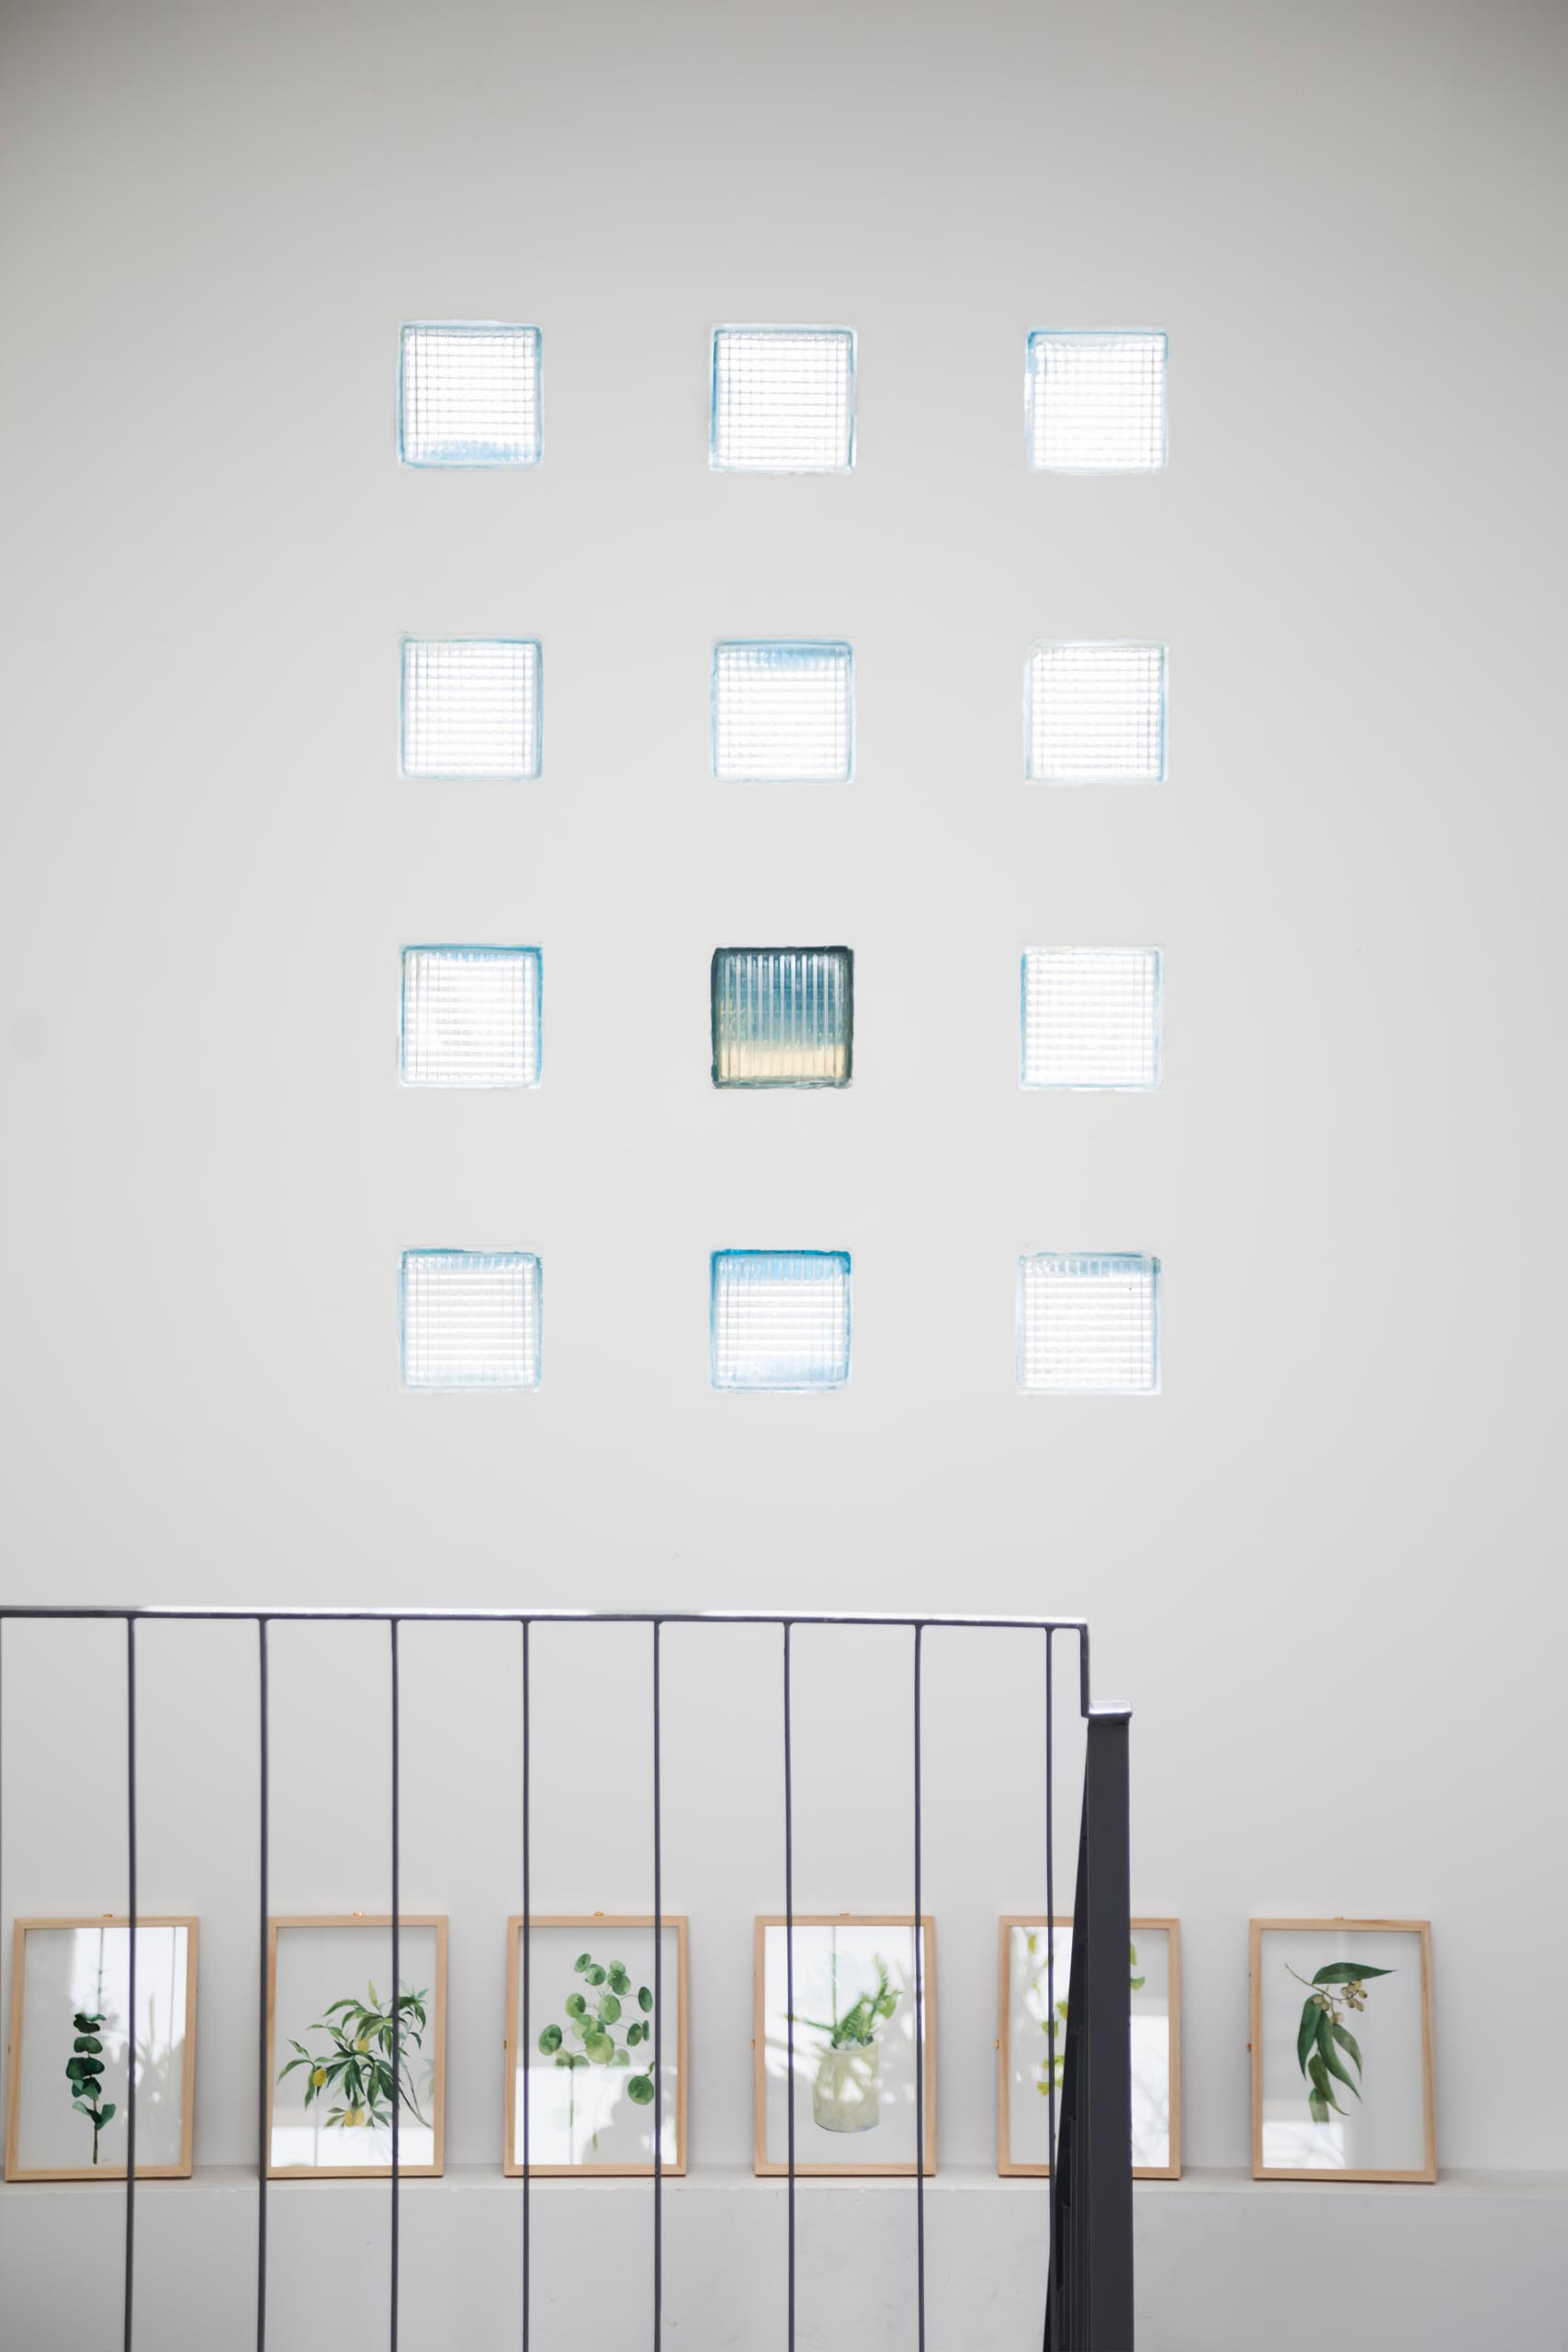 A wall with a grid of small glass block windows.